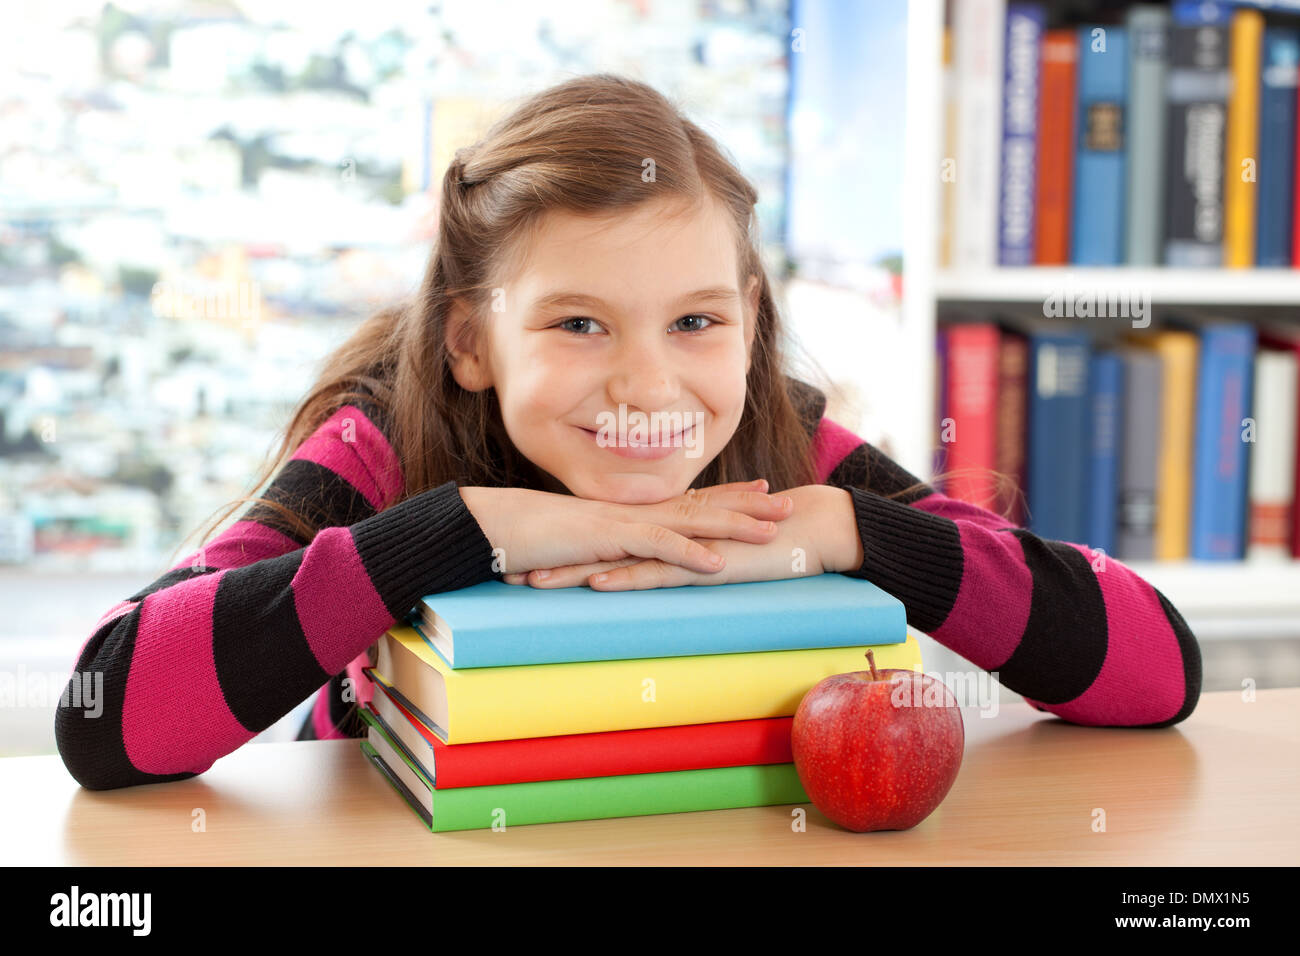 A girl takes a short break at school - Stock Image